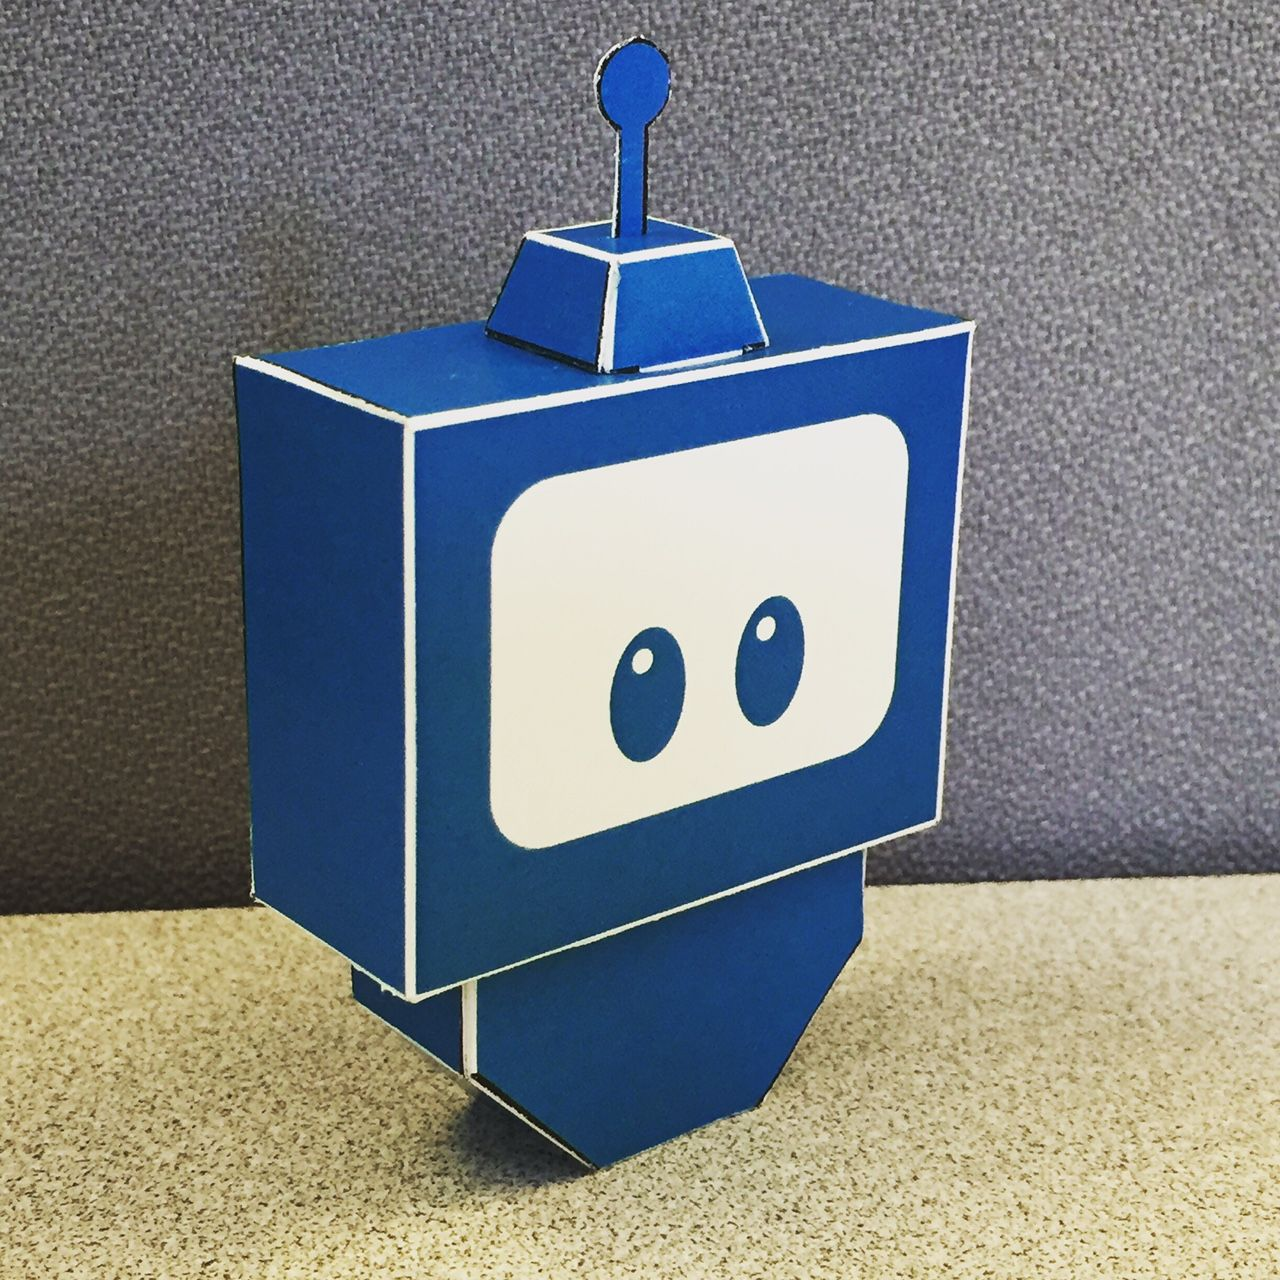 Paper Foldable Commission For Mayfield Robotics